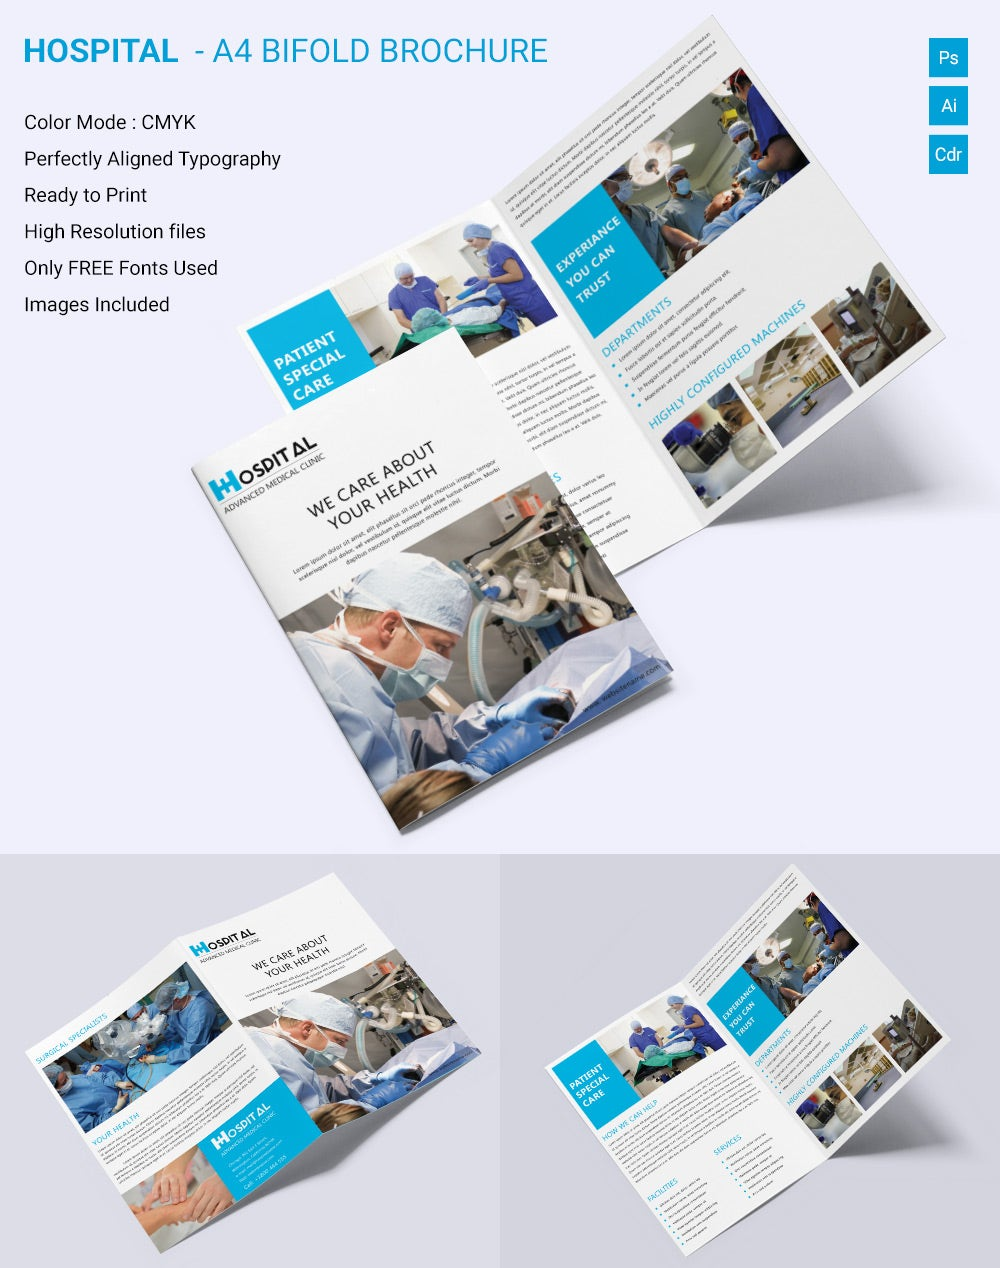 flyer vectors photos and psd files free download - Bi Fold Brochure Template Indesign Free